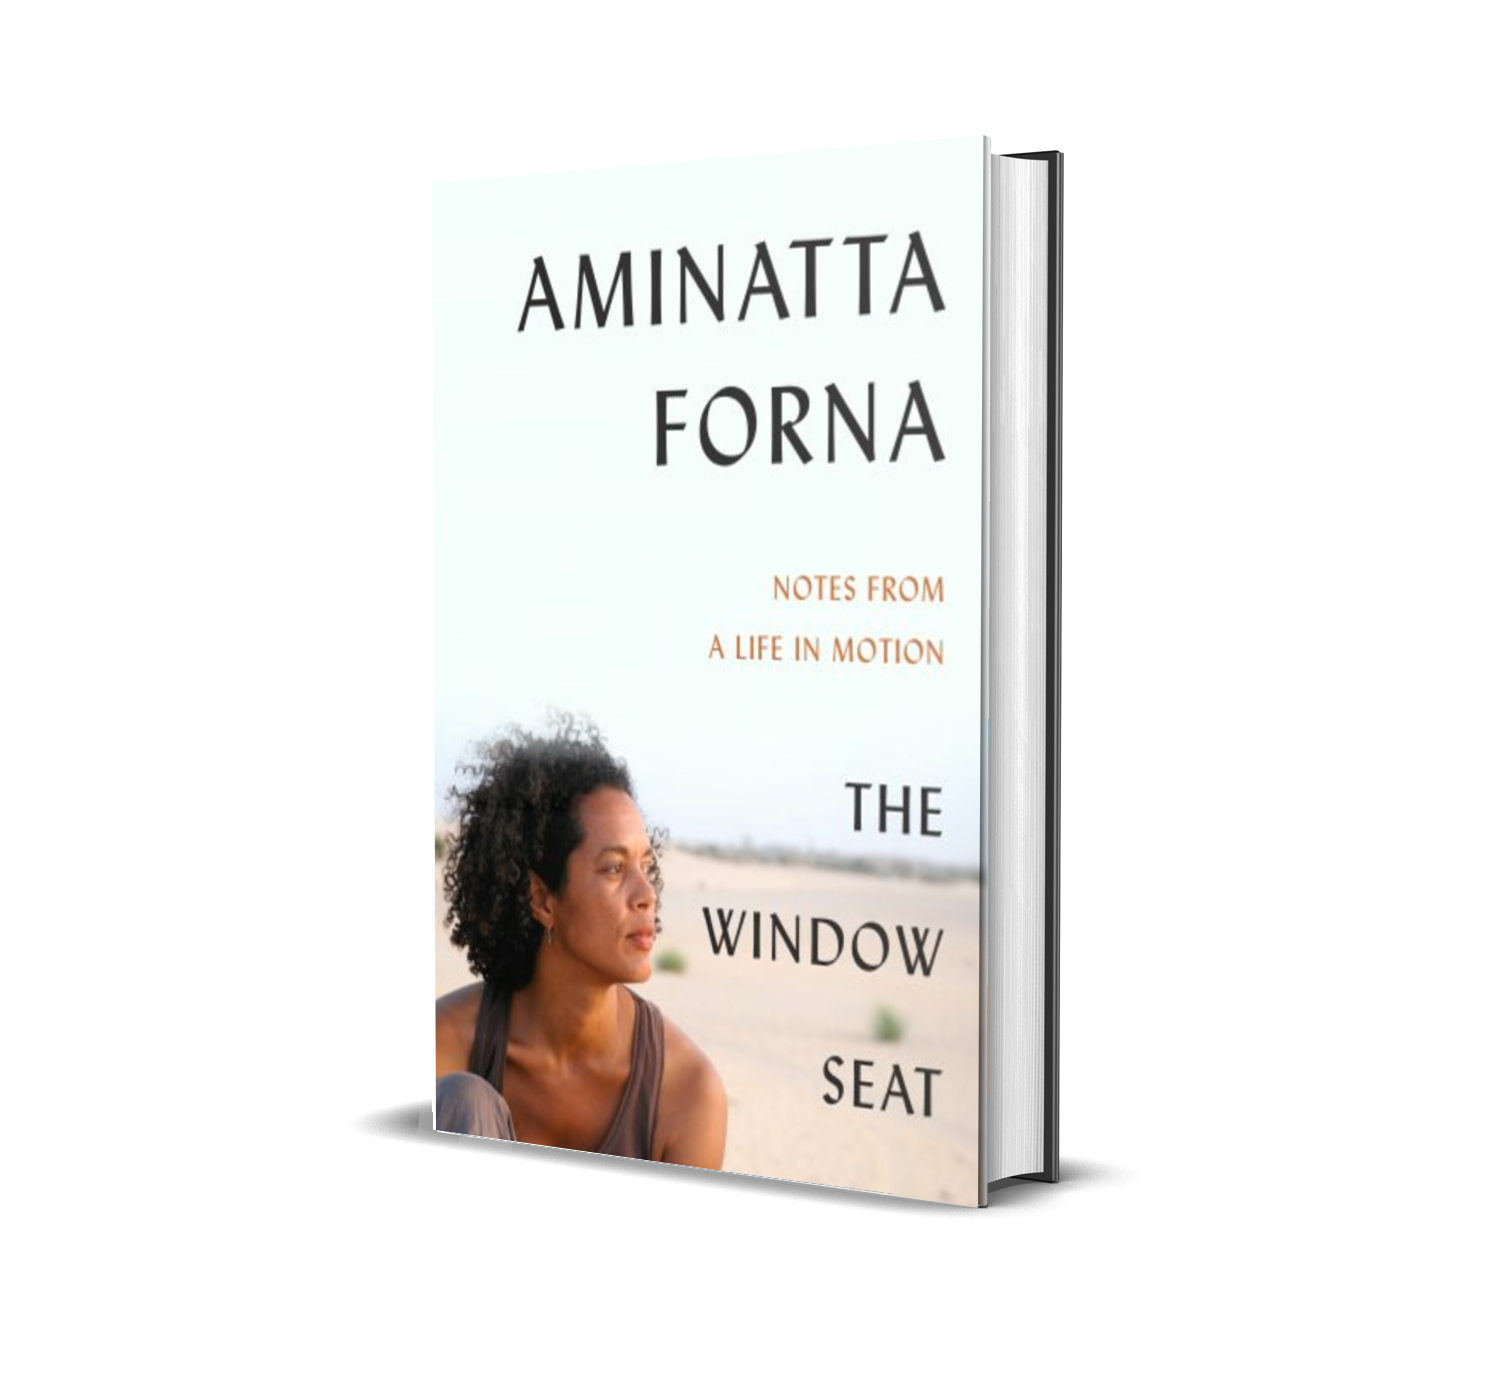 The Window Seat: Notes from a Life in Motion by Aminatta Forna.